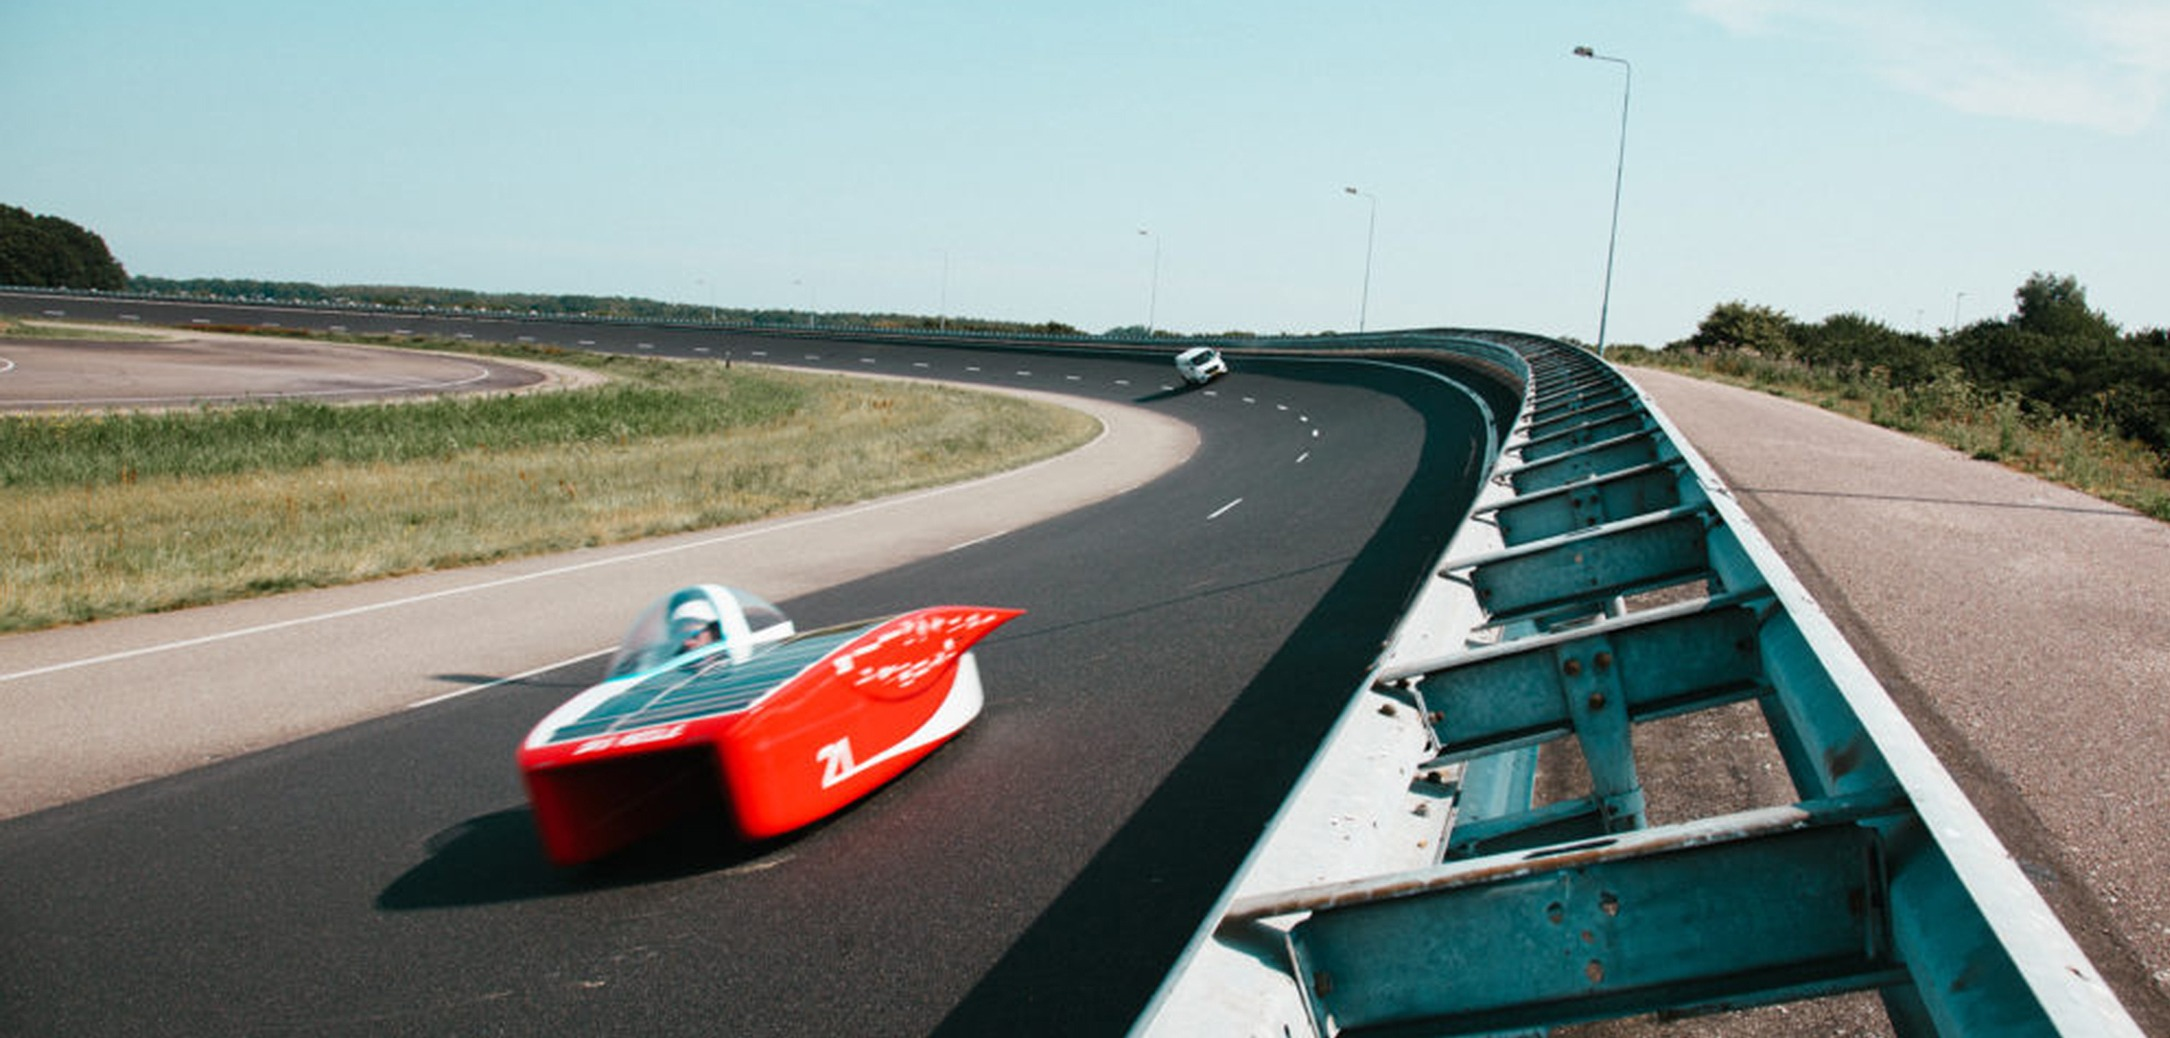 Solar Race Team Turns To Power Analyzer Technology To Boost Speed Electric Hybrid Vehicle Technology International